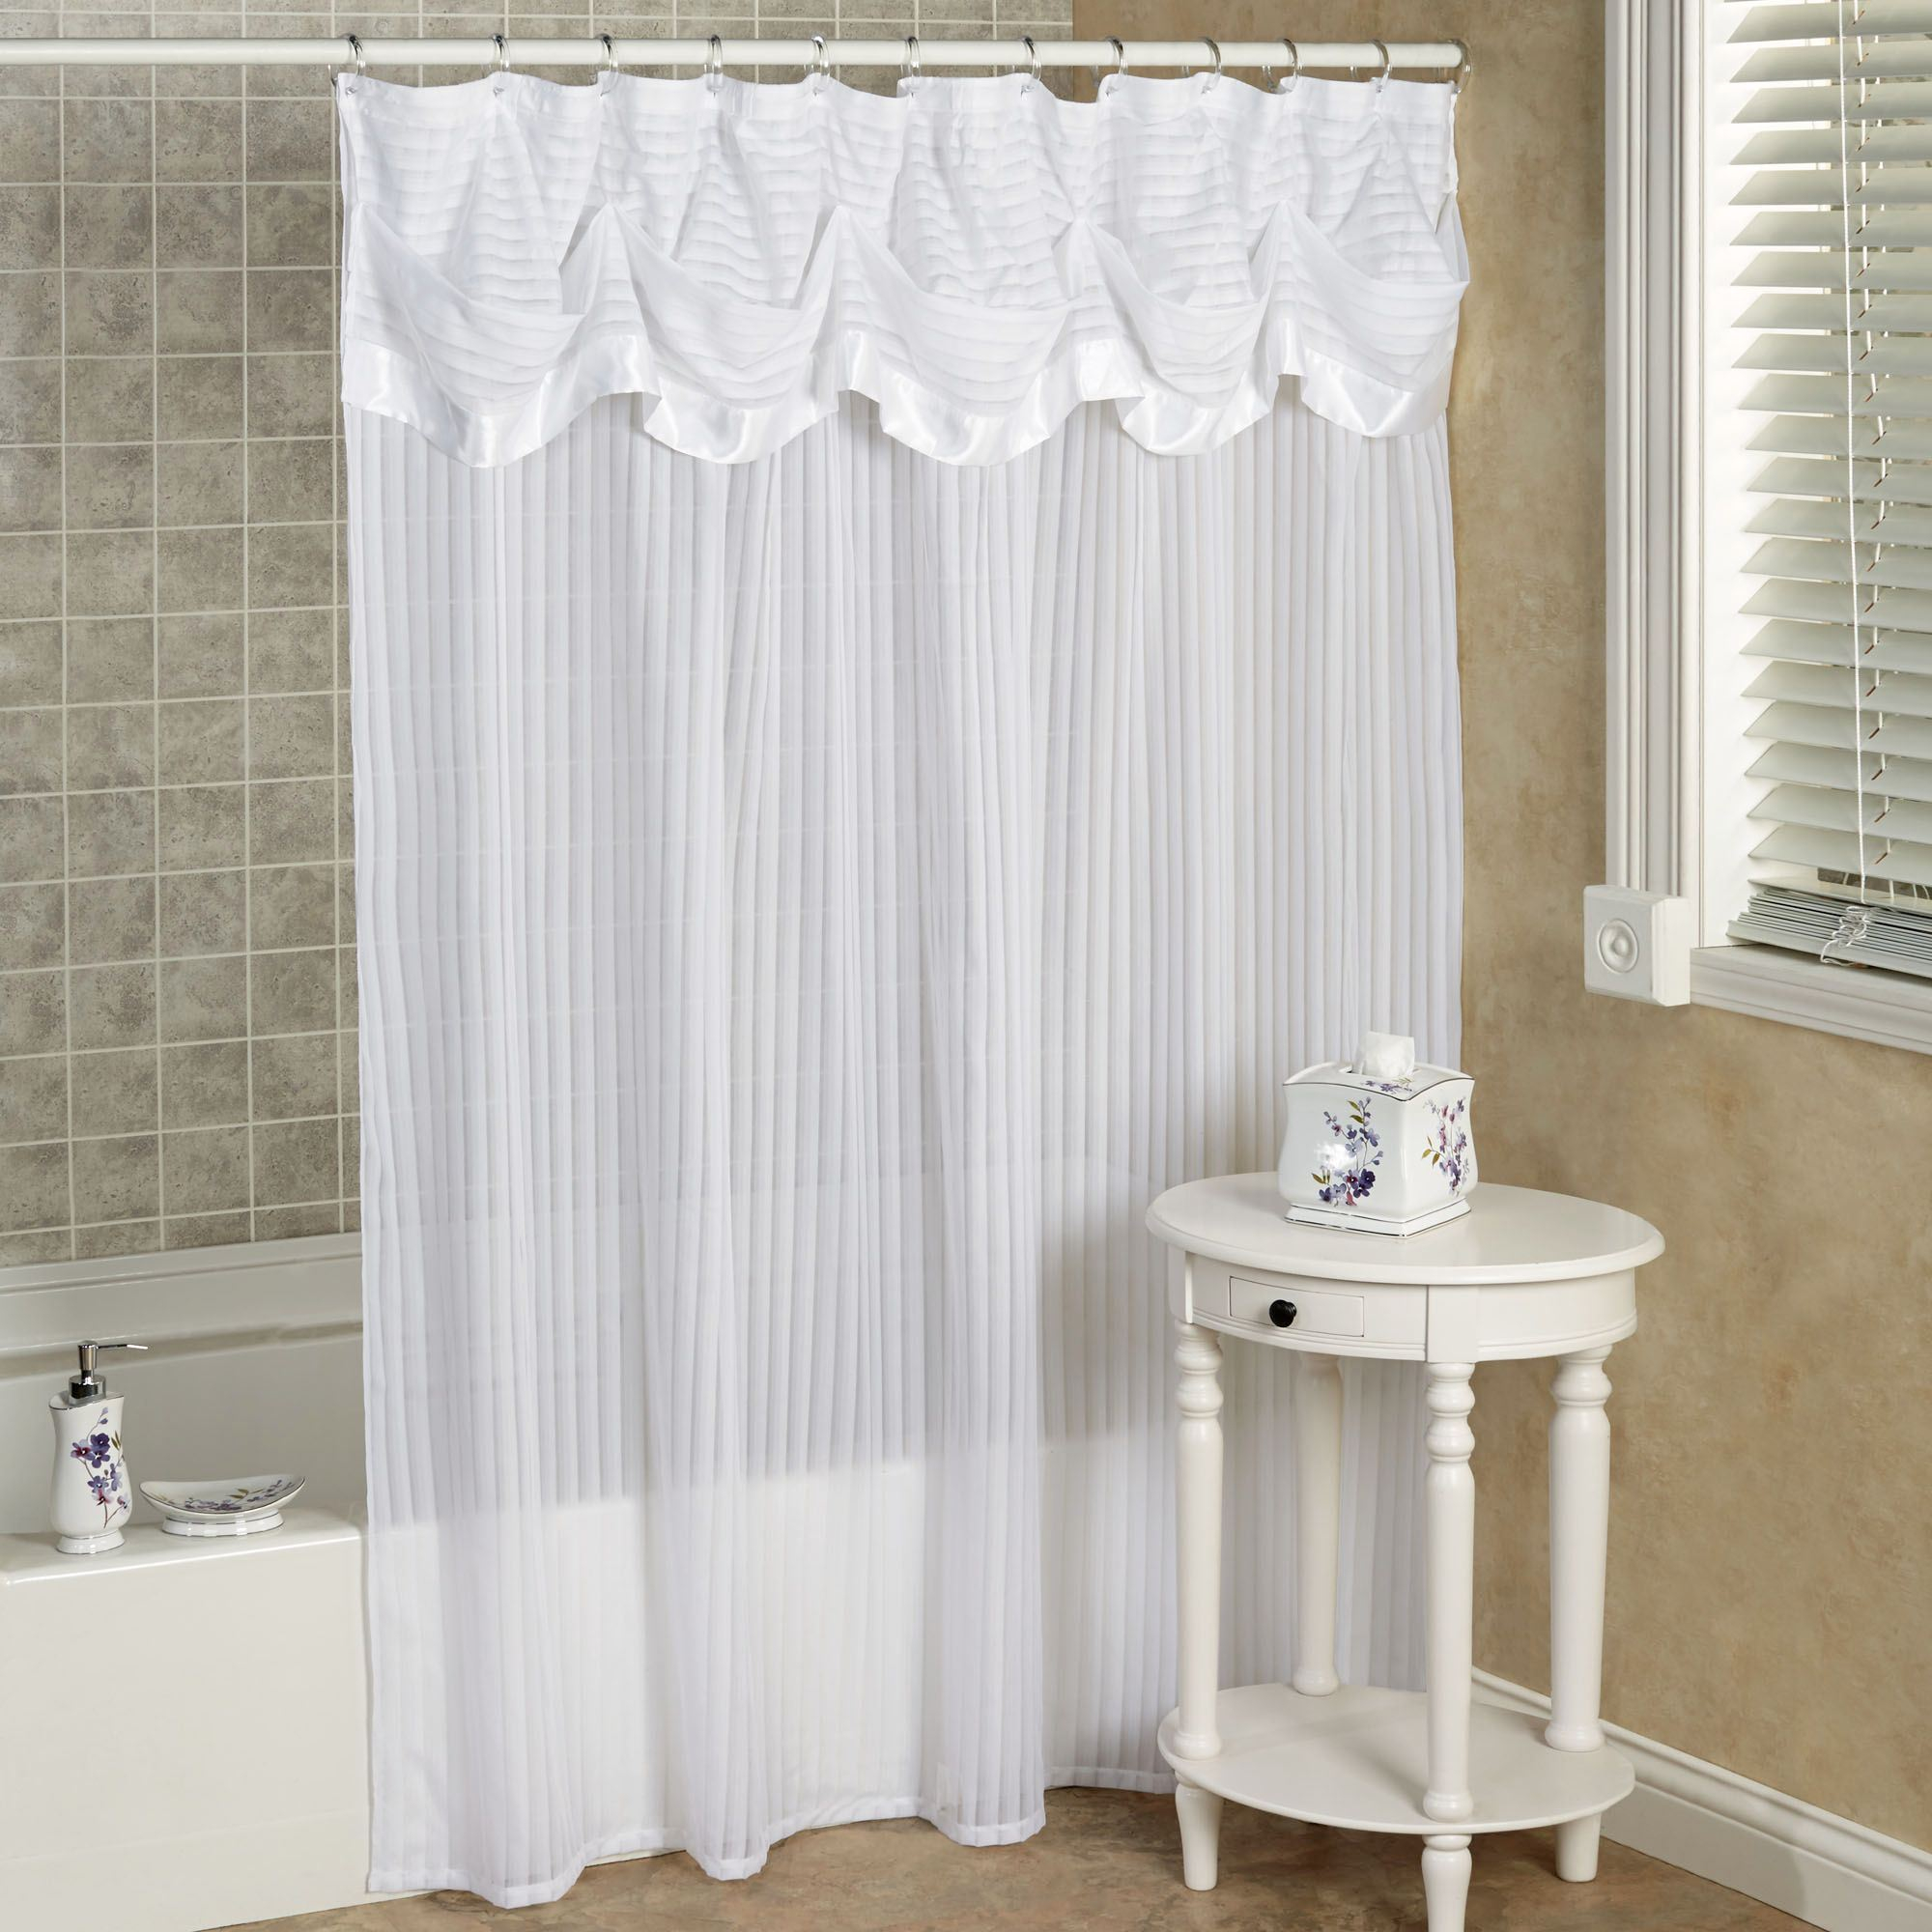 Nimbus Stripe Shower Curtain With Attached Valance within proportions 2000 X 2000